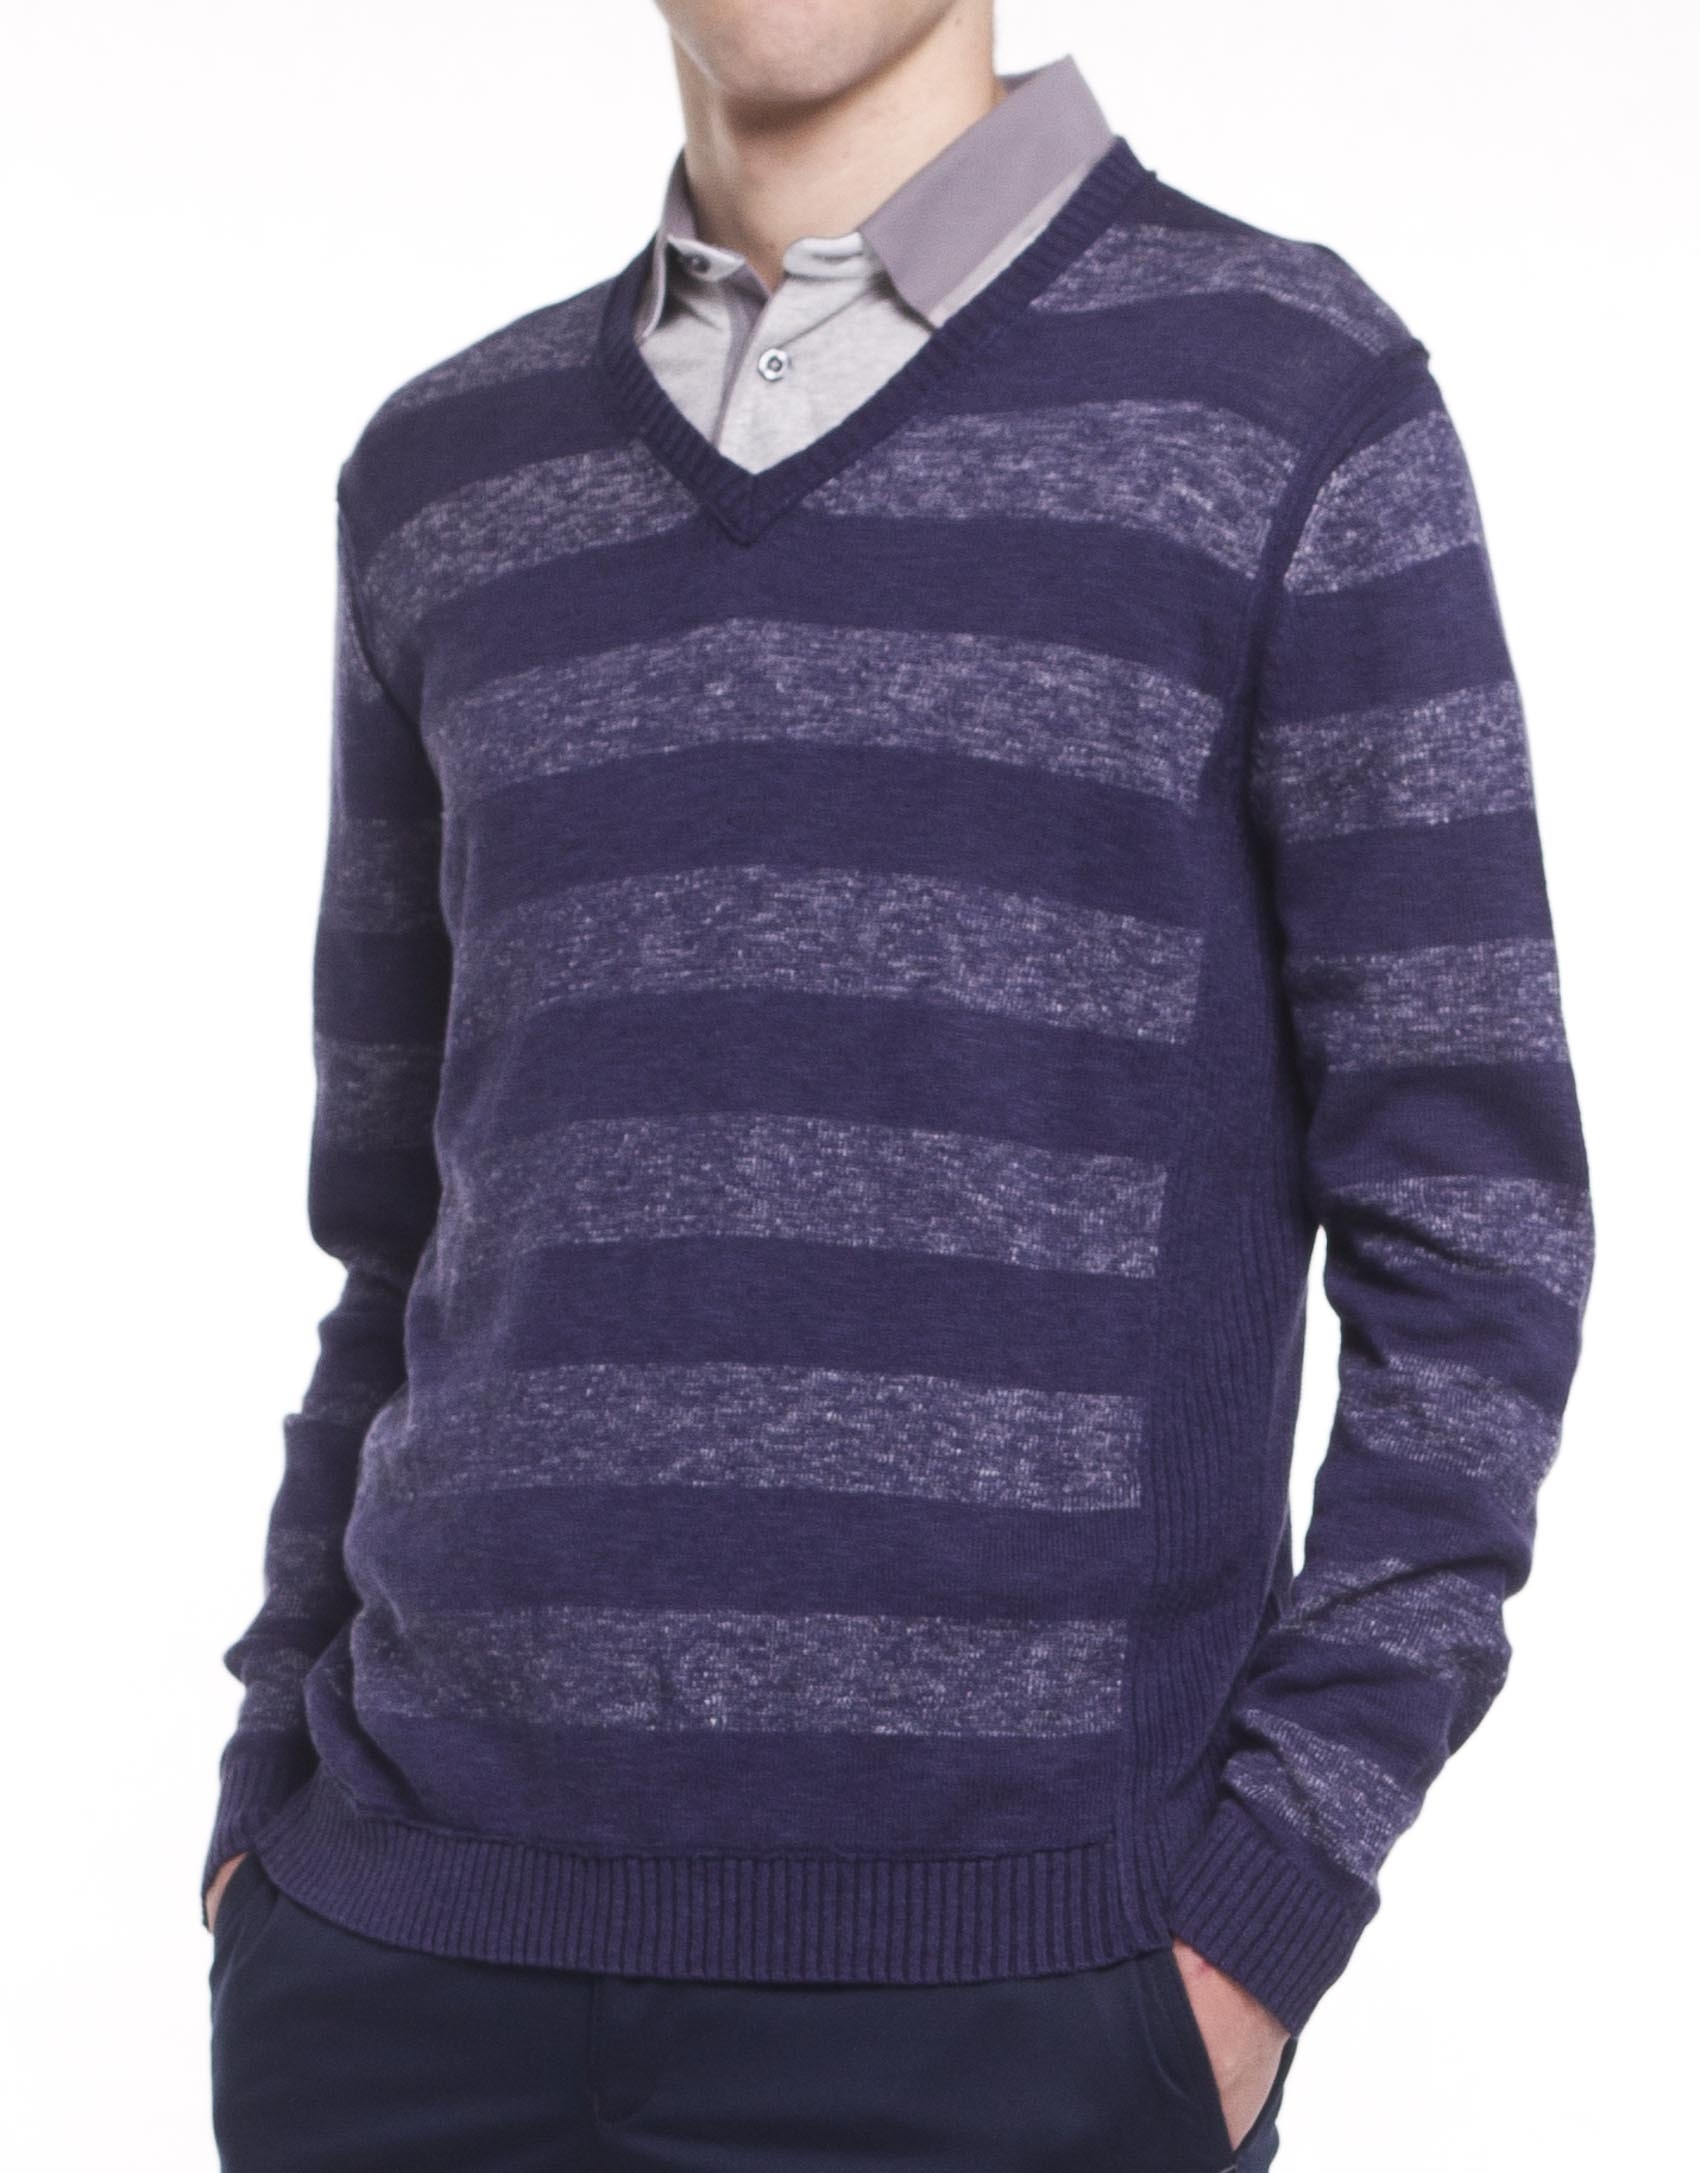 Knitting Pattern Striped Sweater : Striped knit sweater - Roberto Verino